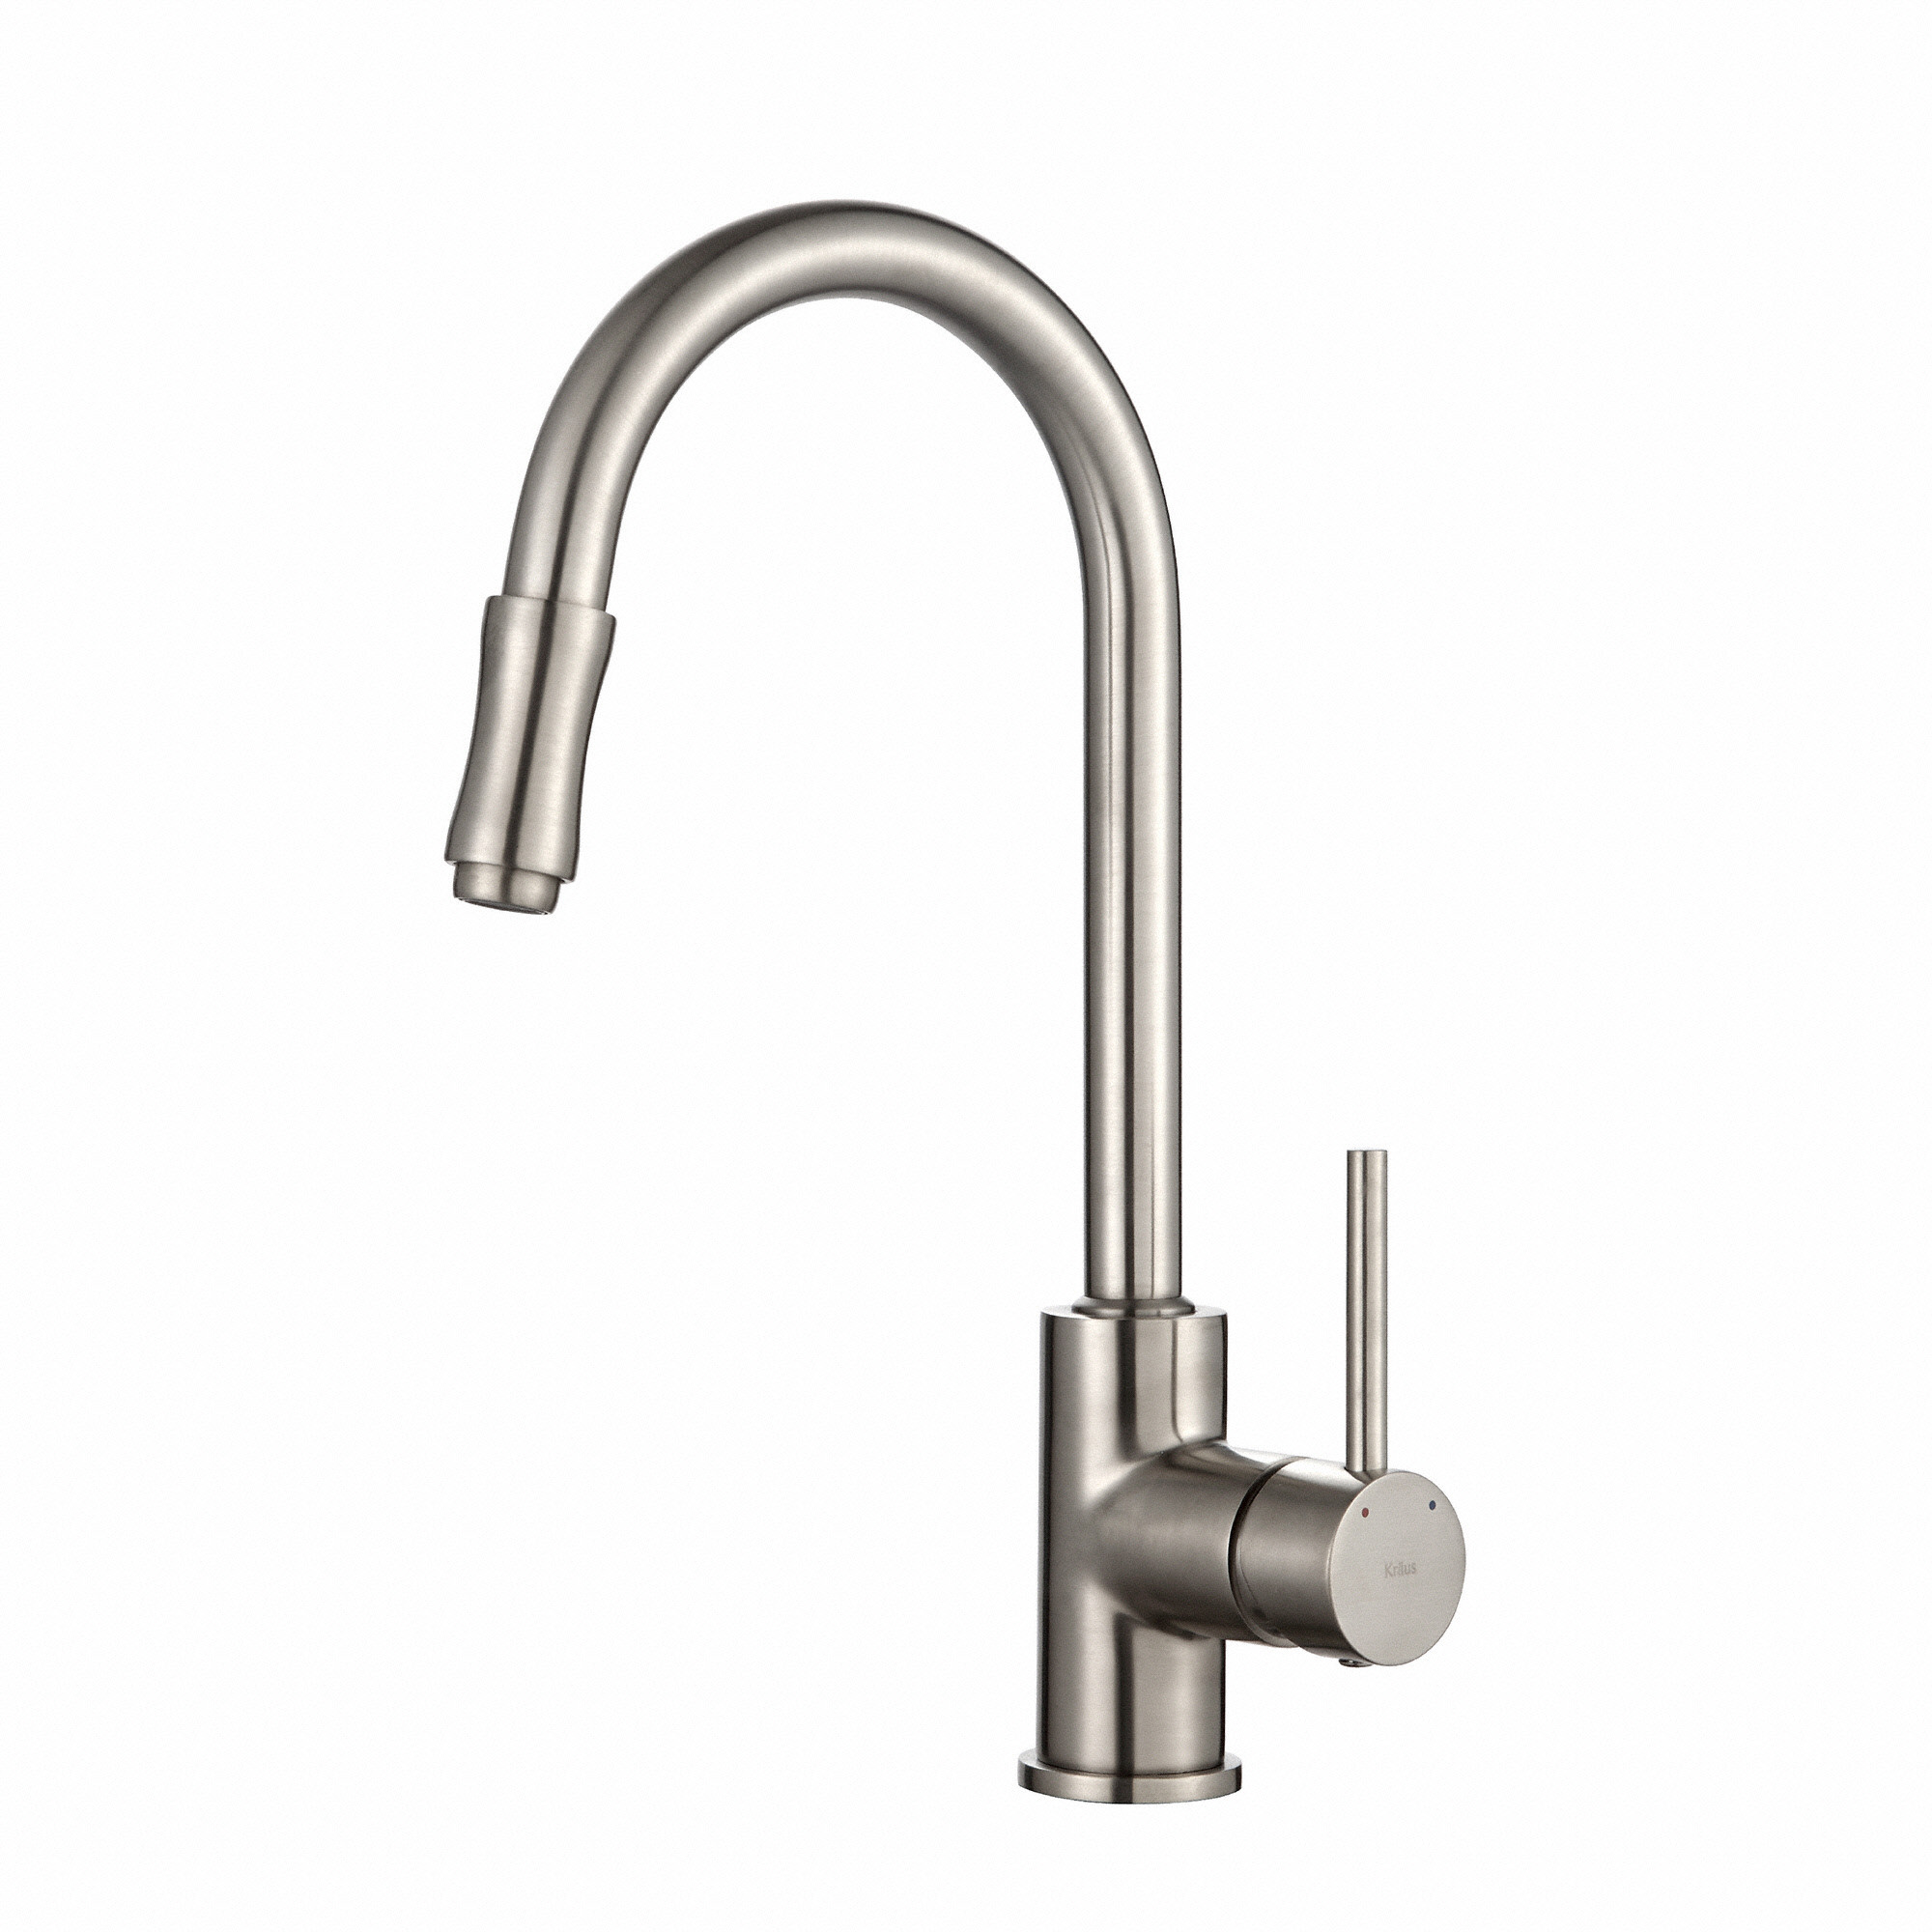 Kraus Kitchen Faucet Series KPF1622SN